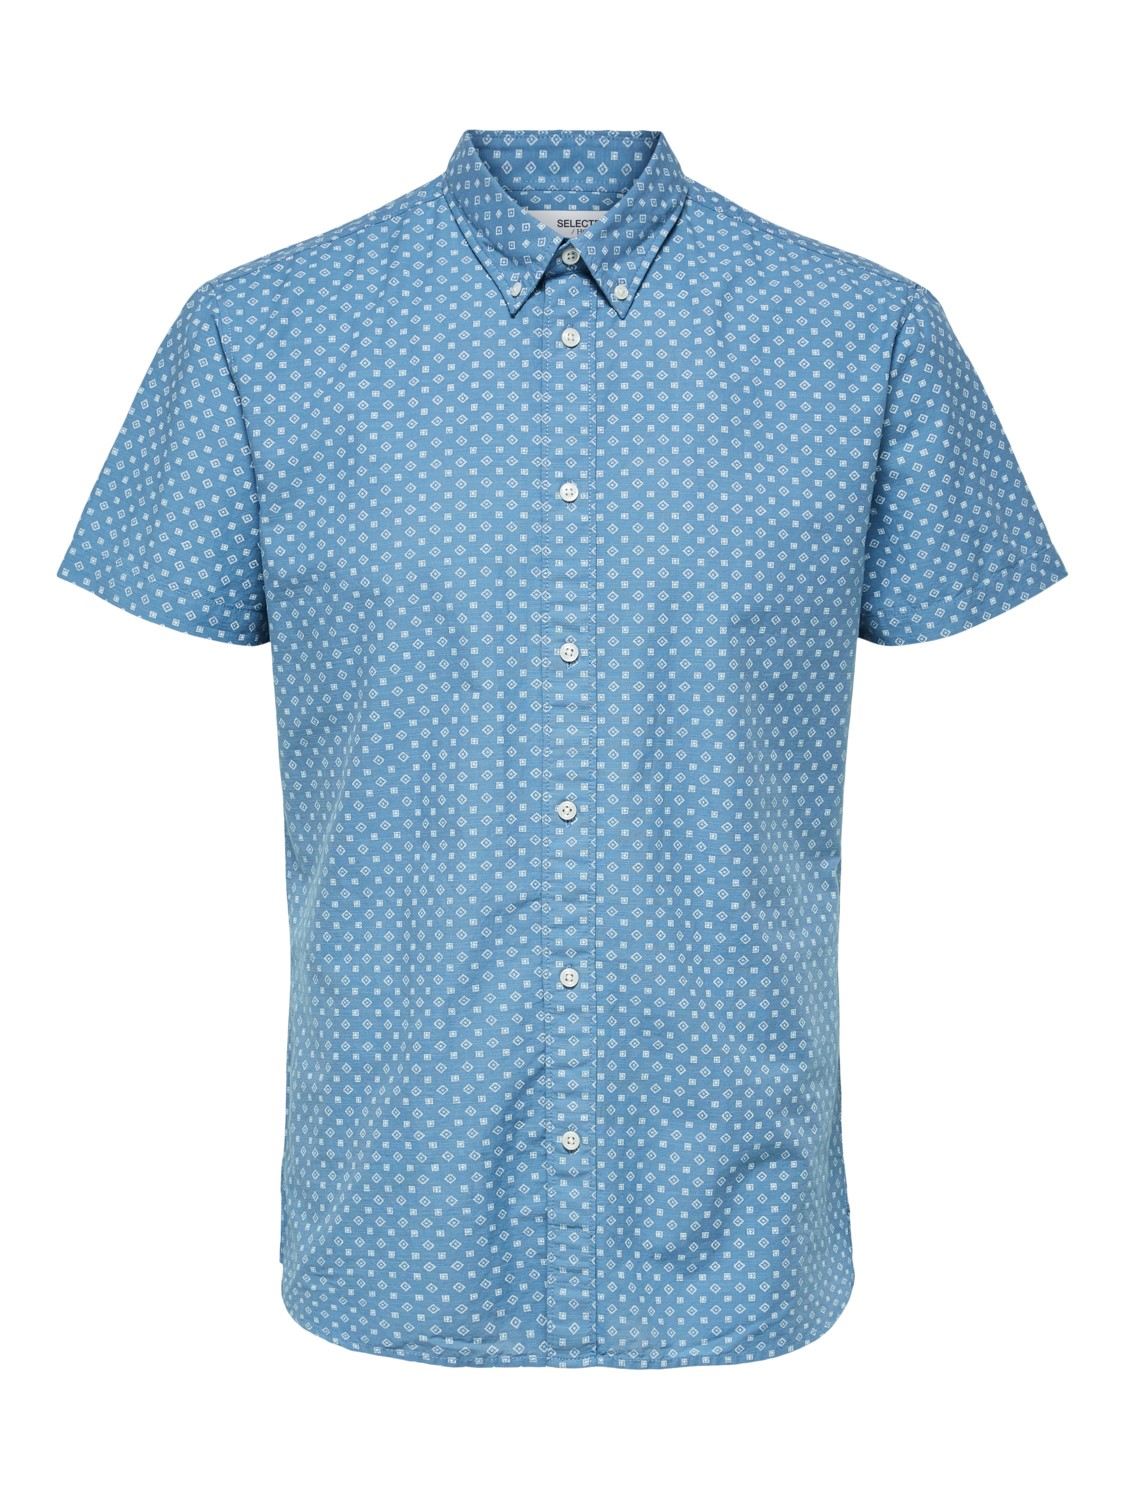 Selected Skjorte - SLHSLIMHART SHIRT LIGHT BLUE | Gate36 Hobro